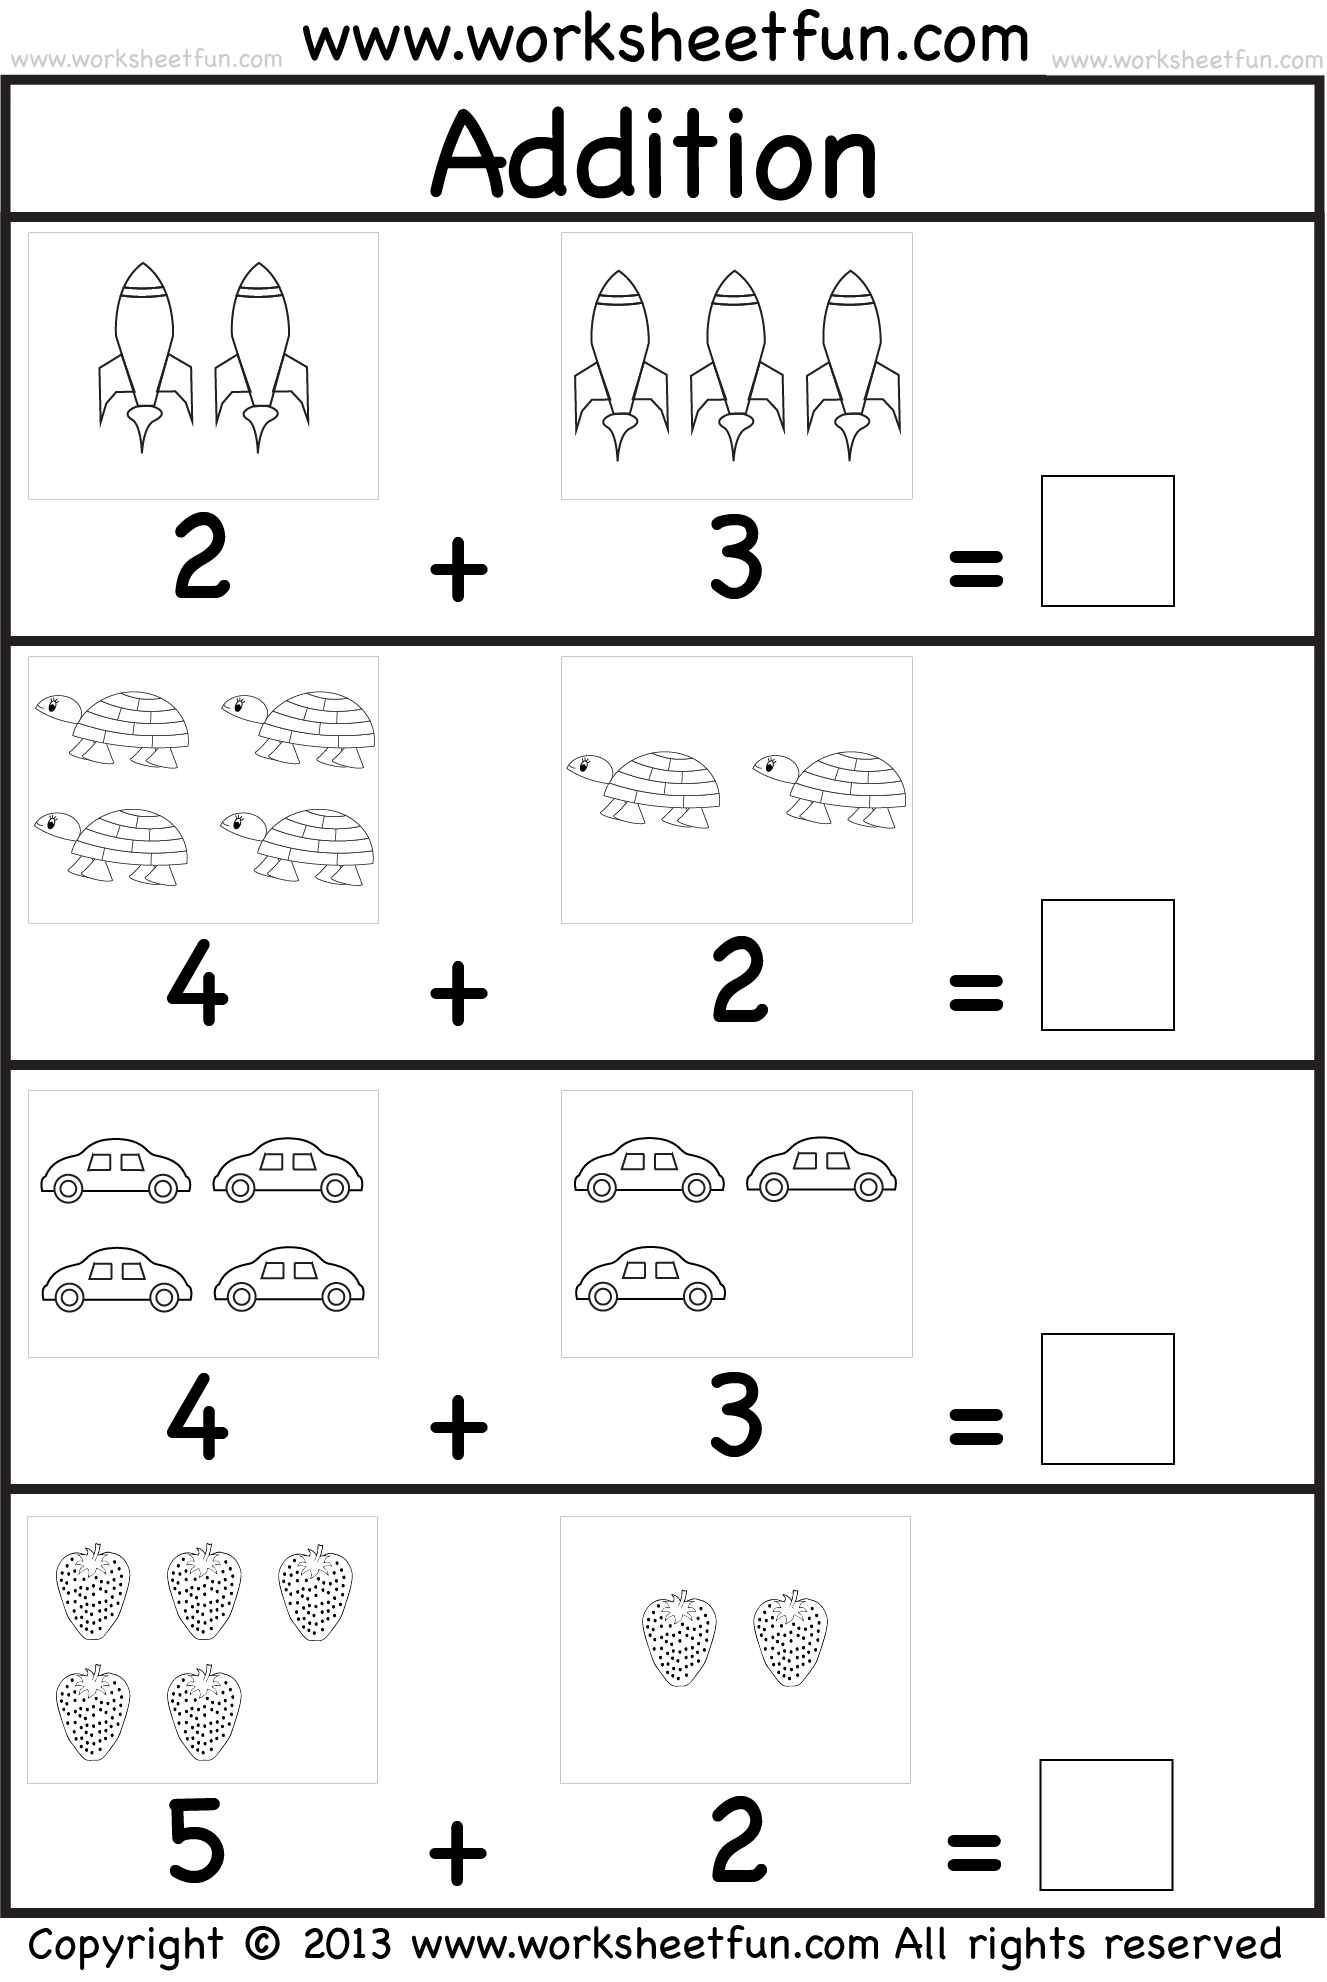 Worksheets Easy Addition Worksheets addition worksheet this site has great free worksheets for everything from abcs to